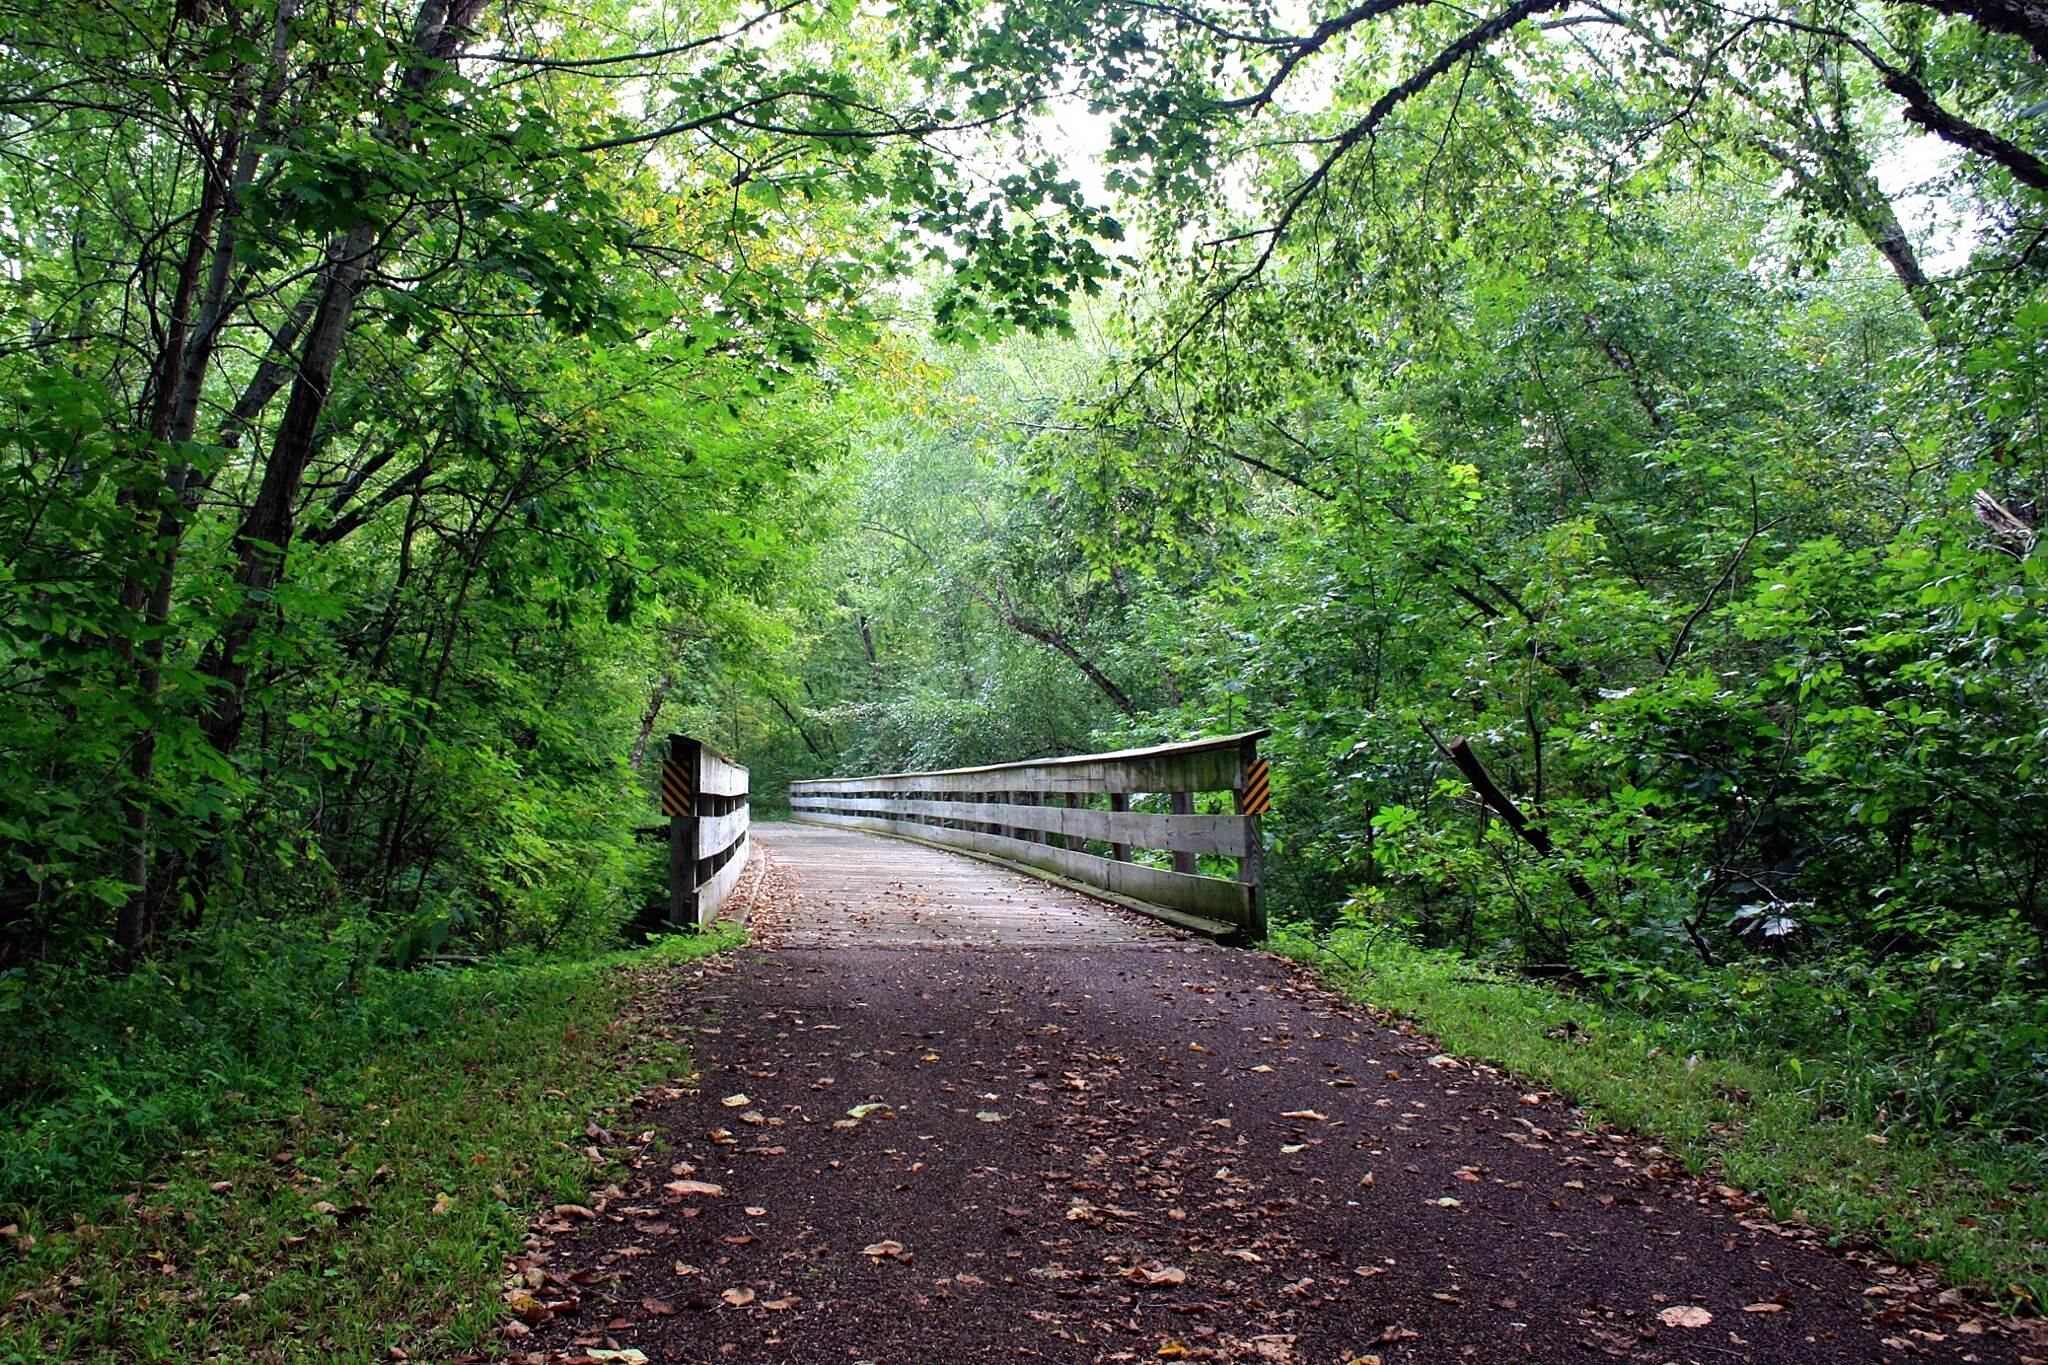 Chippewa River State Trail Chippewa River Trail A beautiful ride.